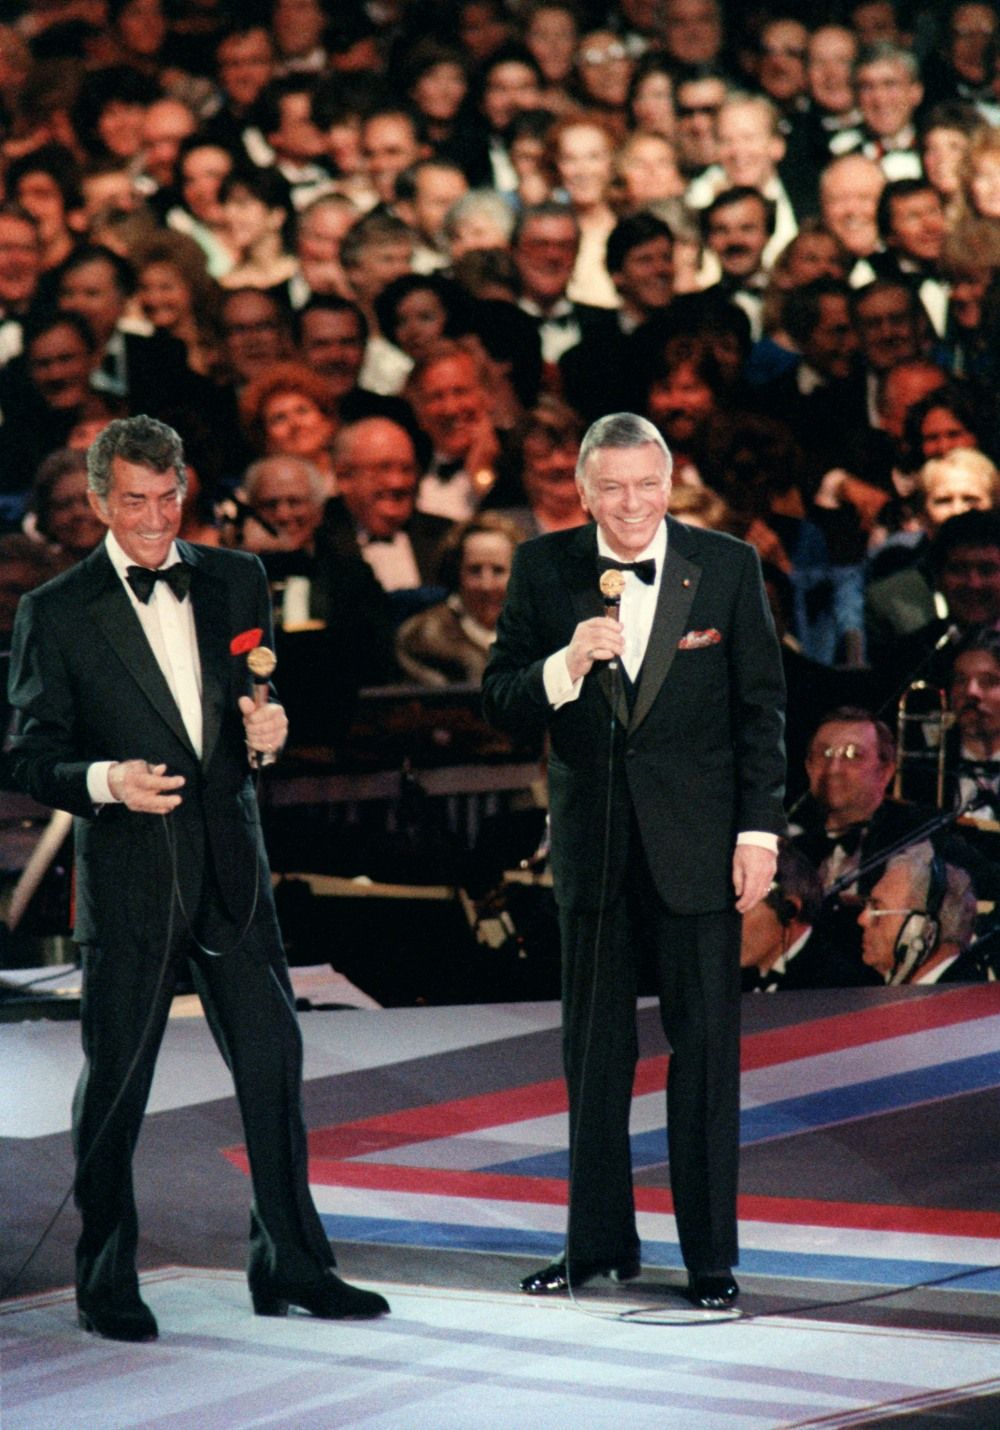 Dean Martin and Frank Sinatra performing at Reagan's 1985 Presidential Inaugural Gala at the D.C. Convention Center.